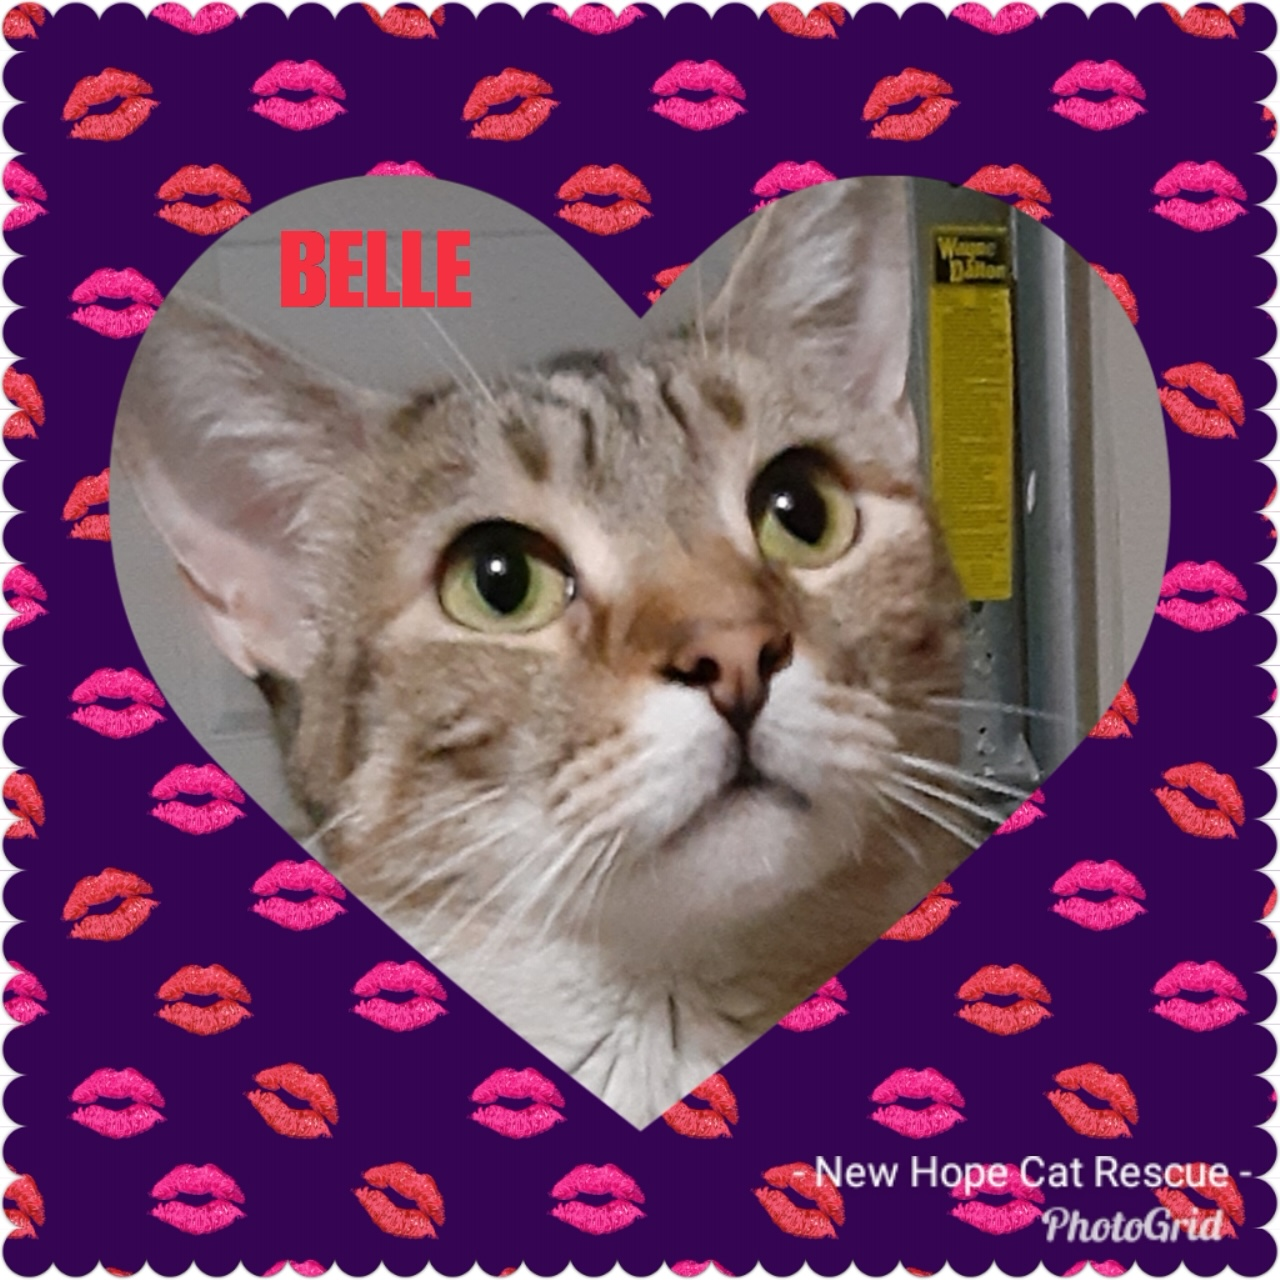 Belle - New Hope Cat Rescue